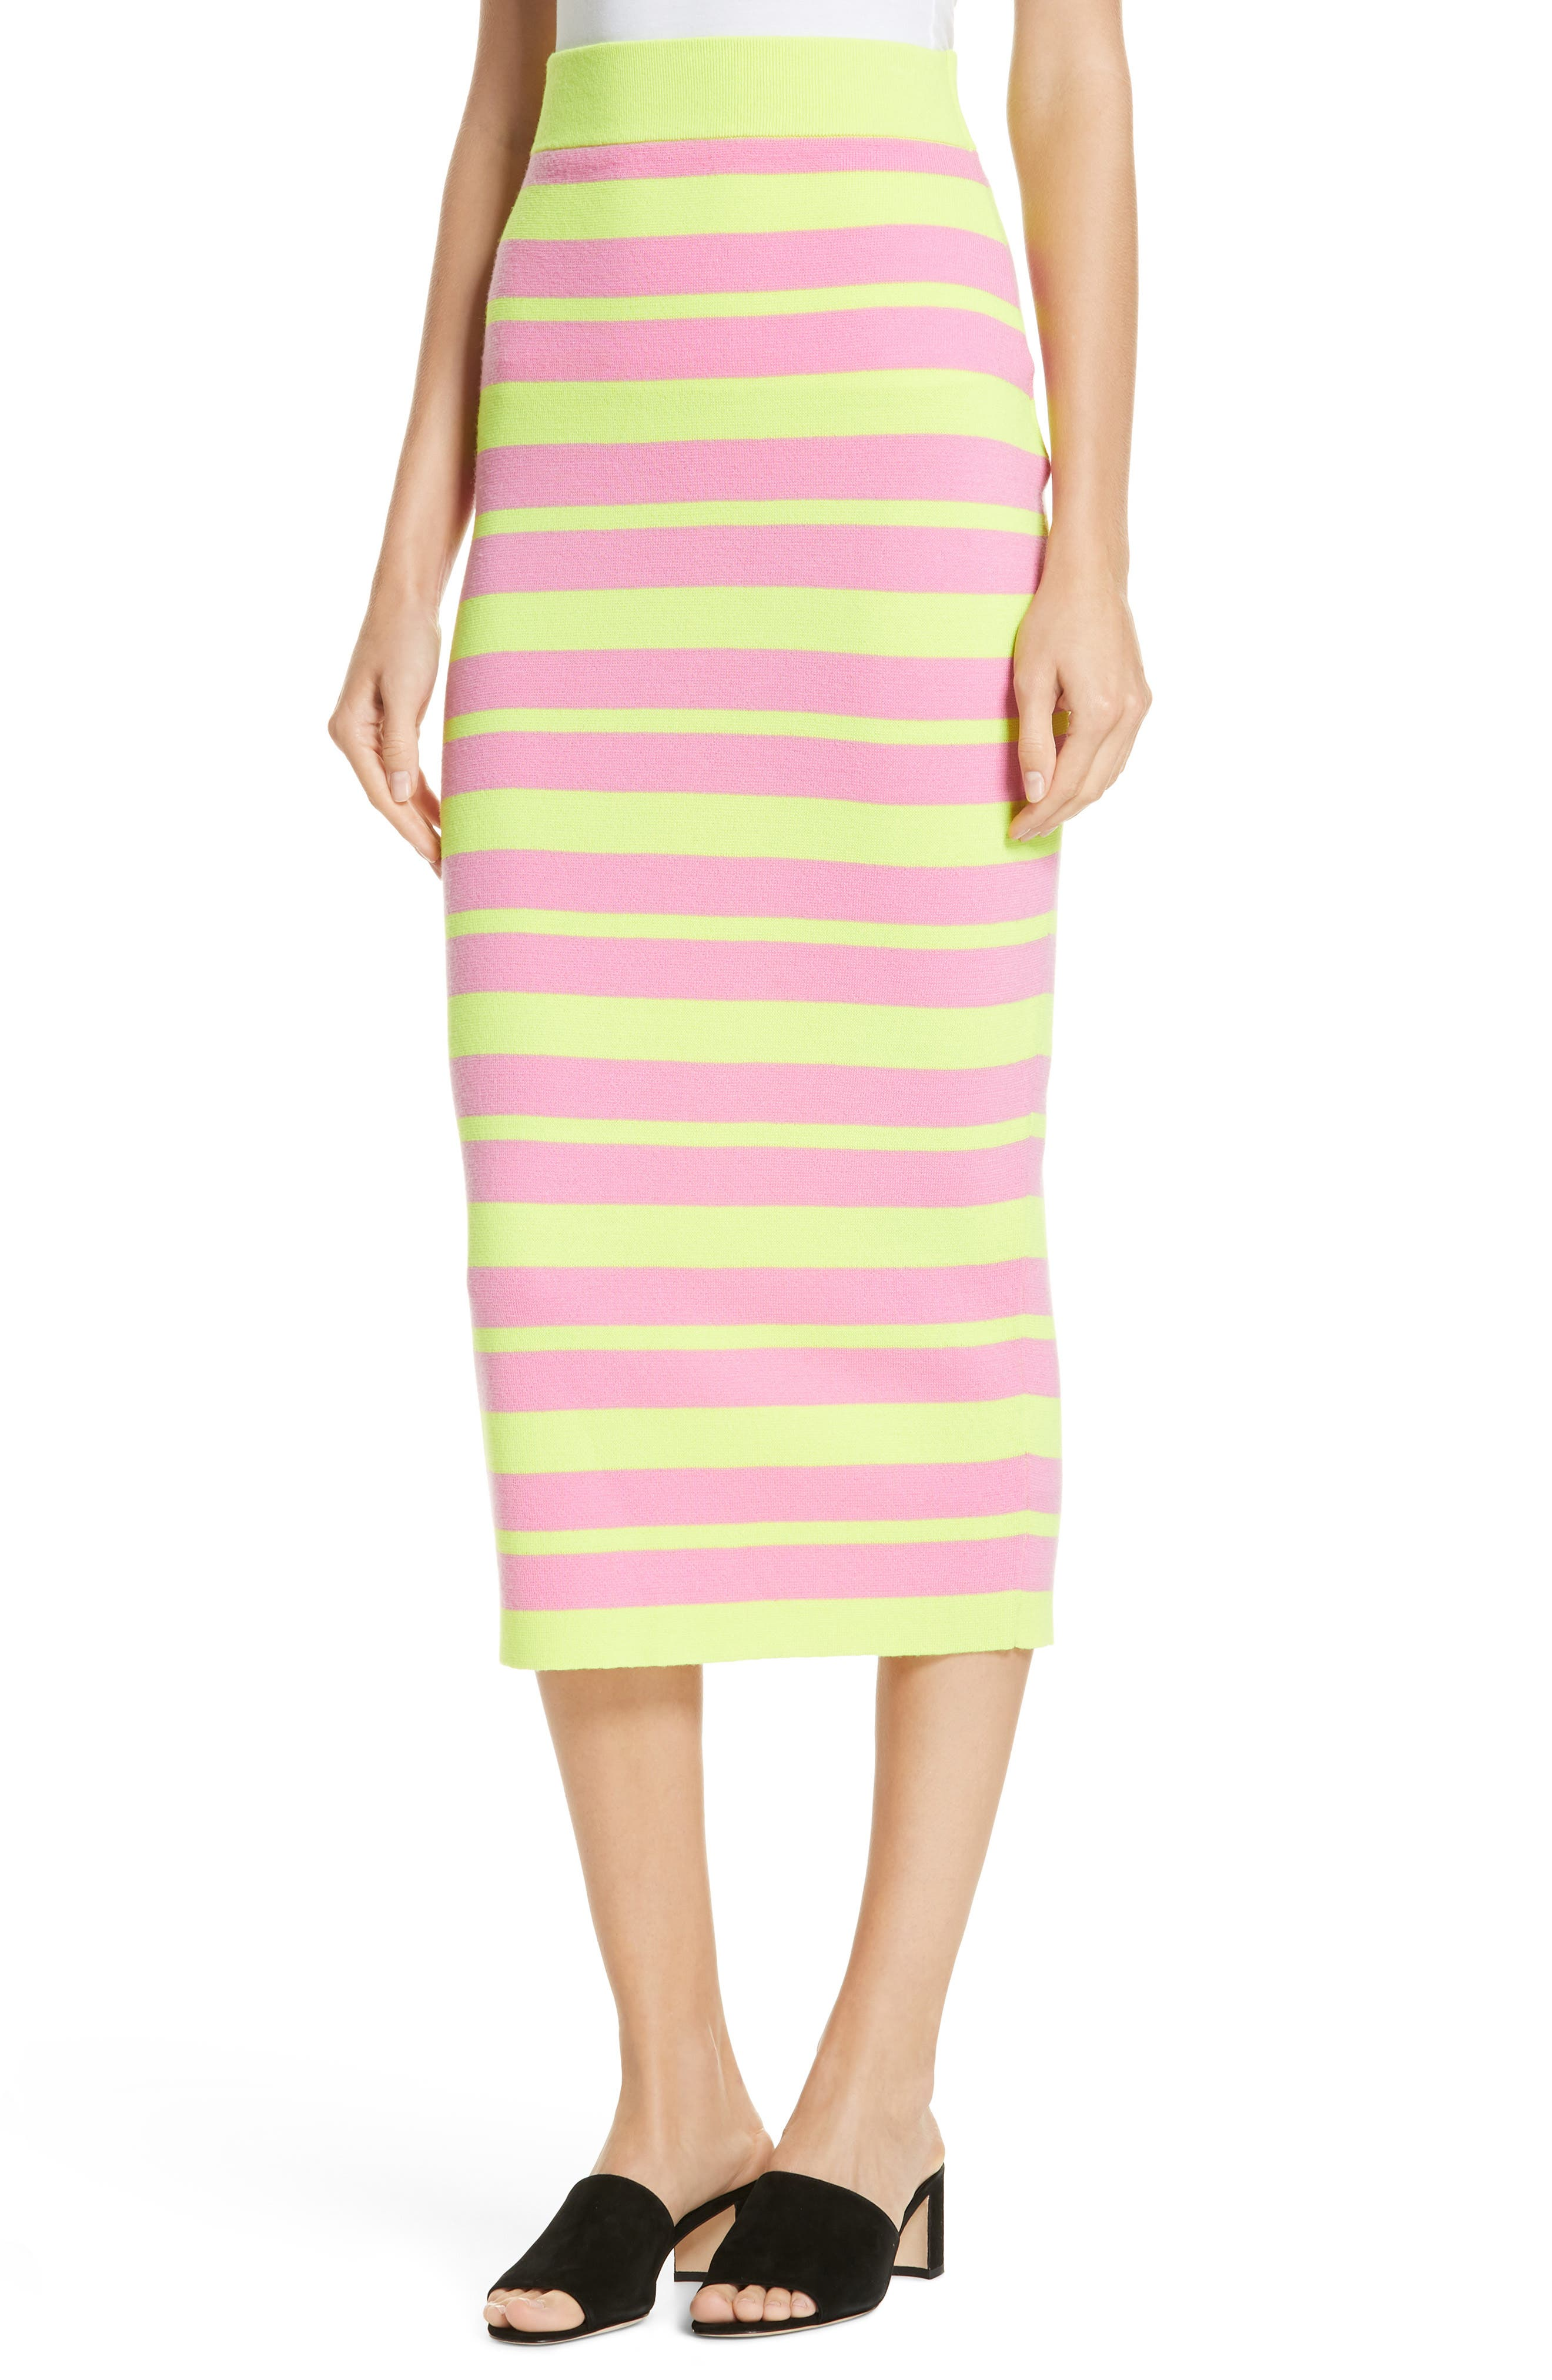 Stripe Knit Maxi Skirt,                             Alternate thumbnail 4, color,                             LIME AND PINK COMBO